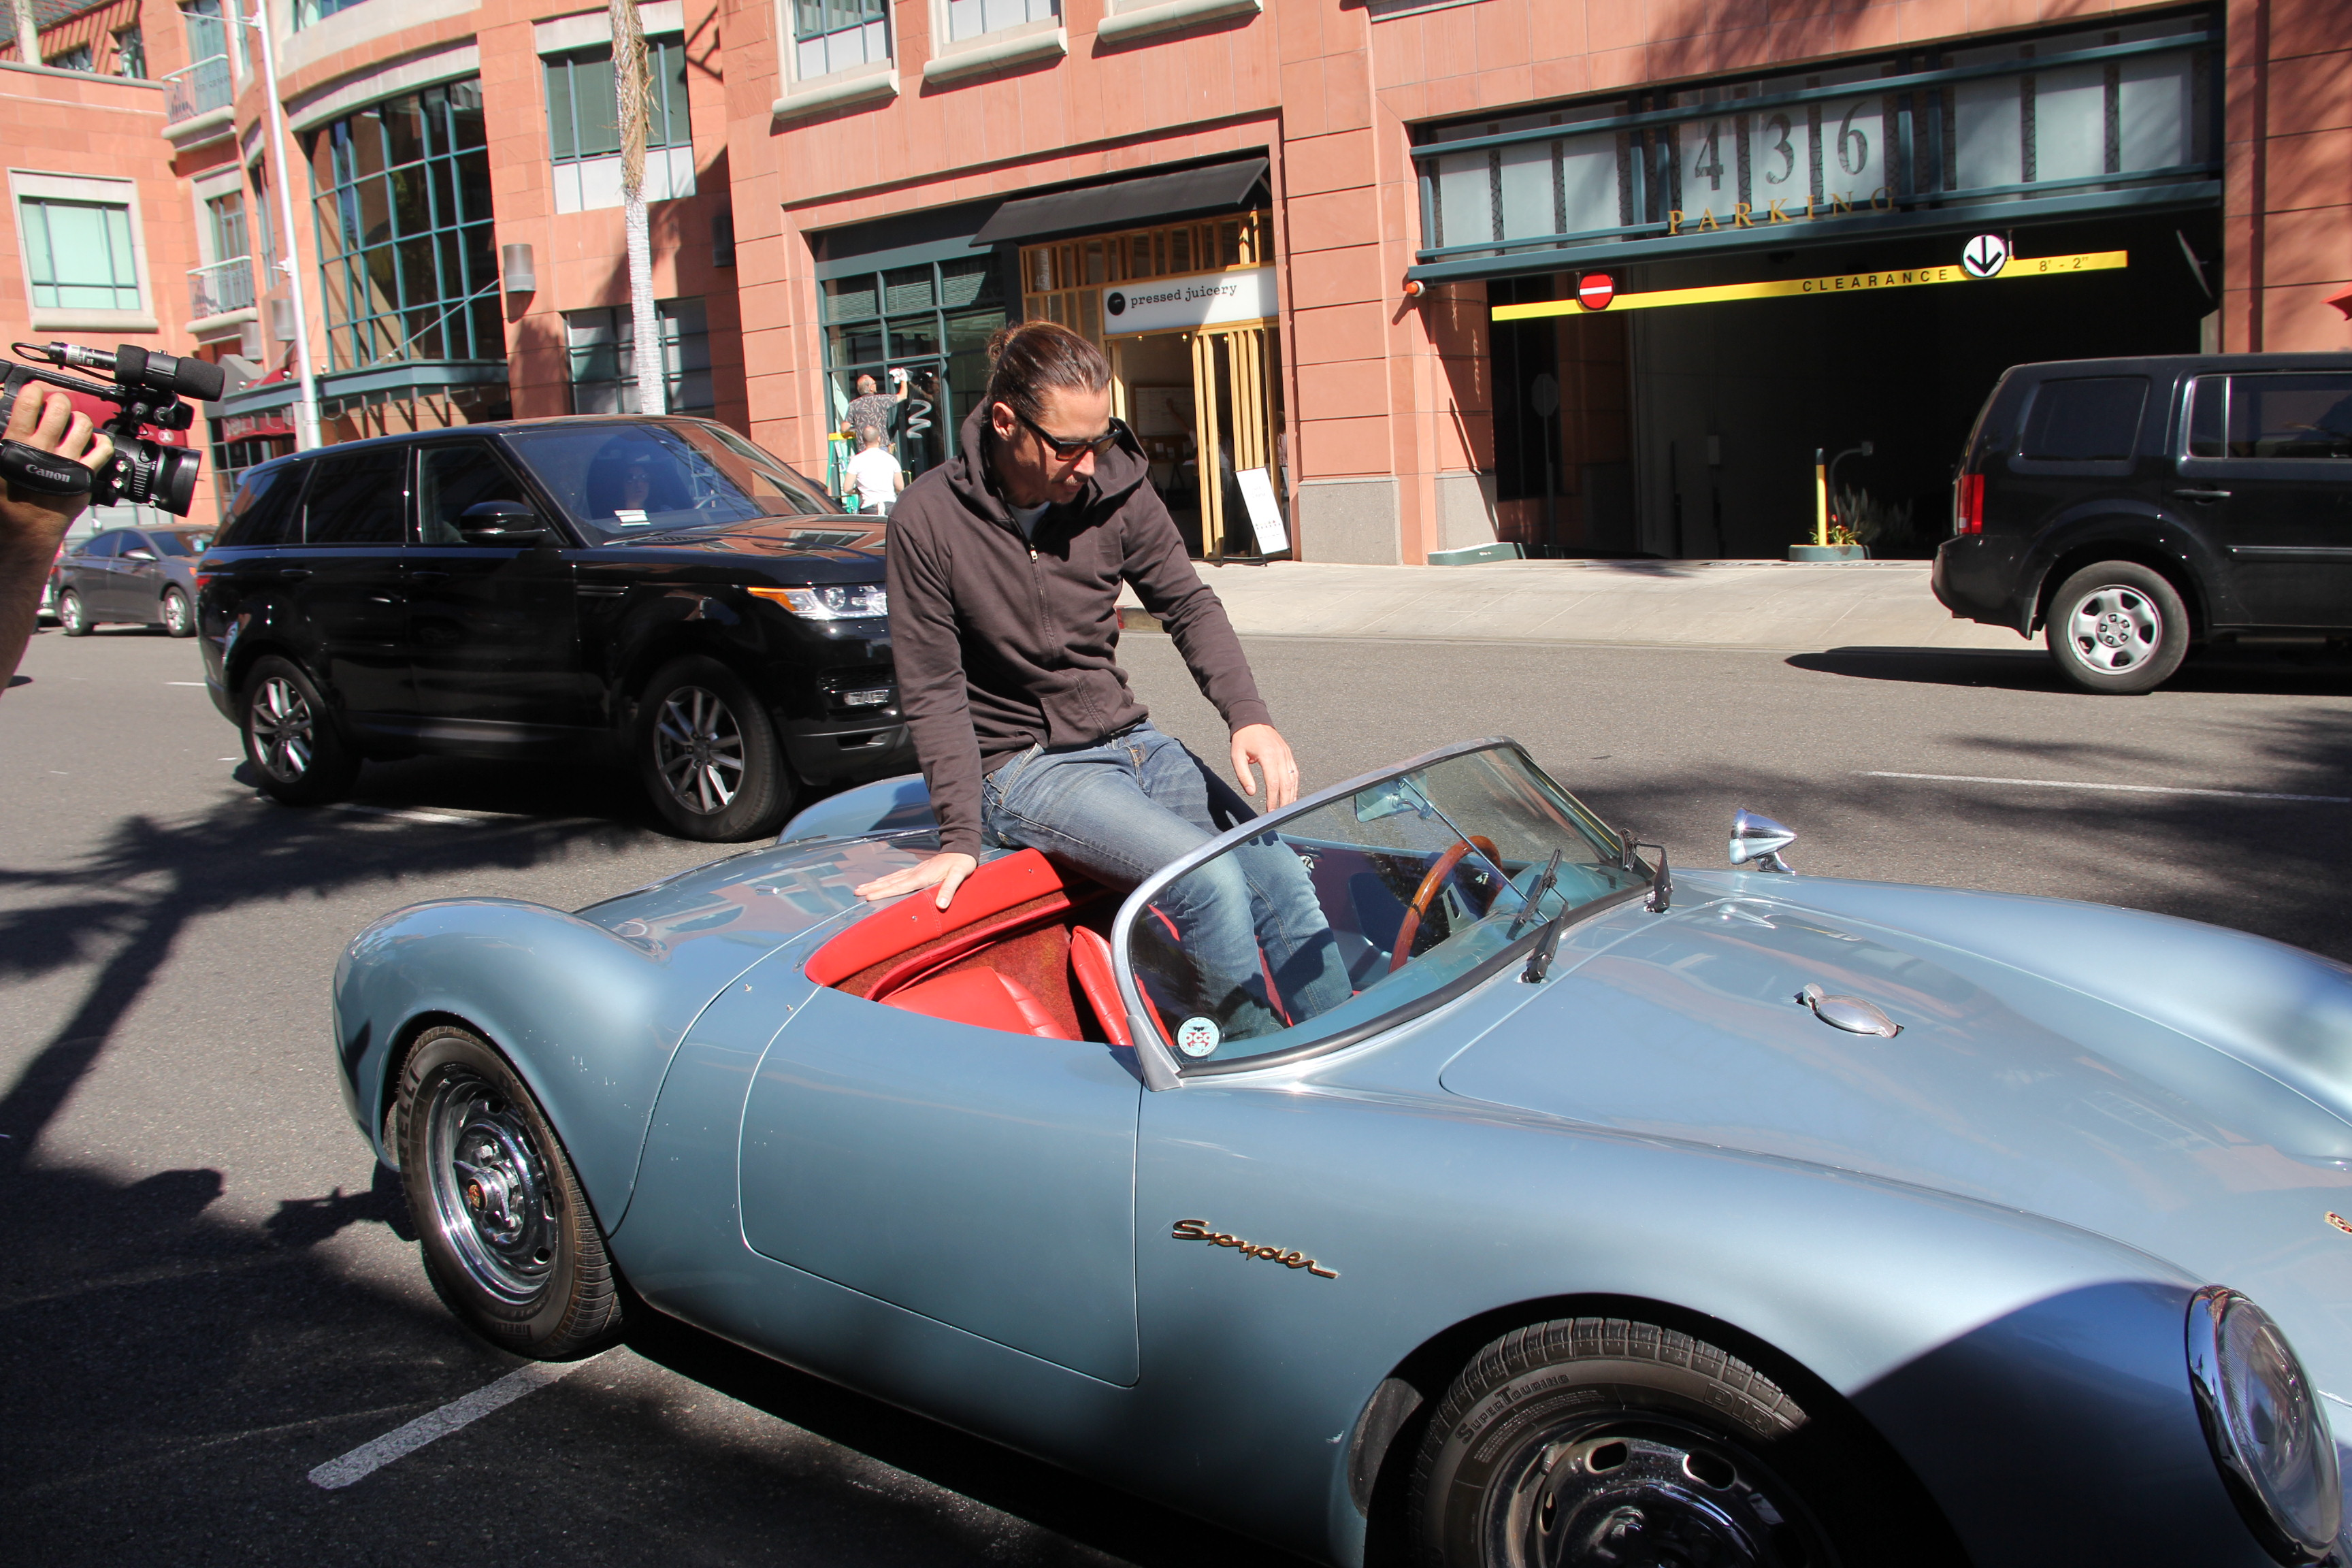 Chris Cornell jumps into his vintage 1955 Porsche Speedster Spyder, the same model James Dean drove  Featuring: Chris Cornell Where: Beverly Hills, California, United States When: 10 Feb 2016 Credit: WENN.com